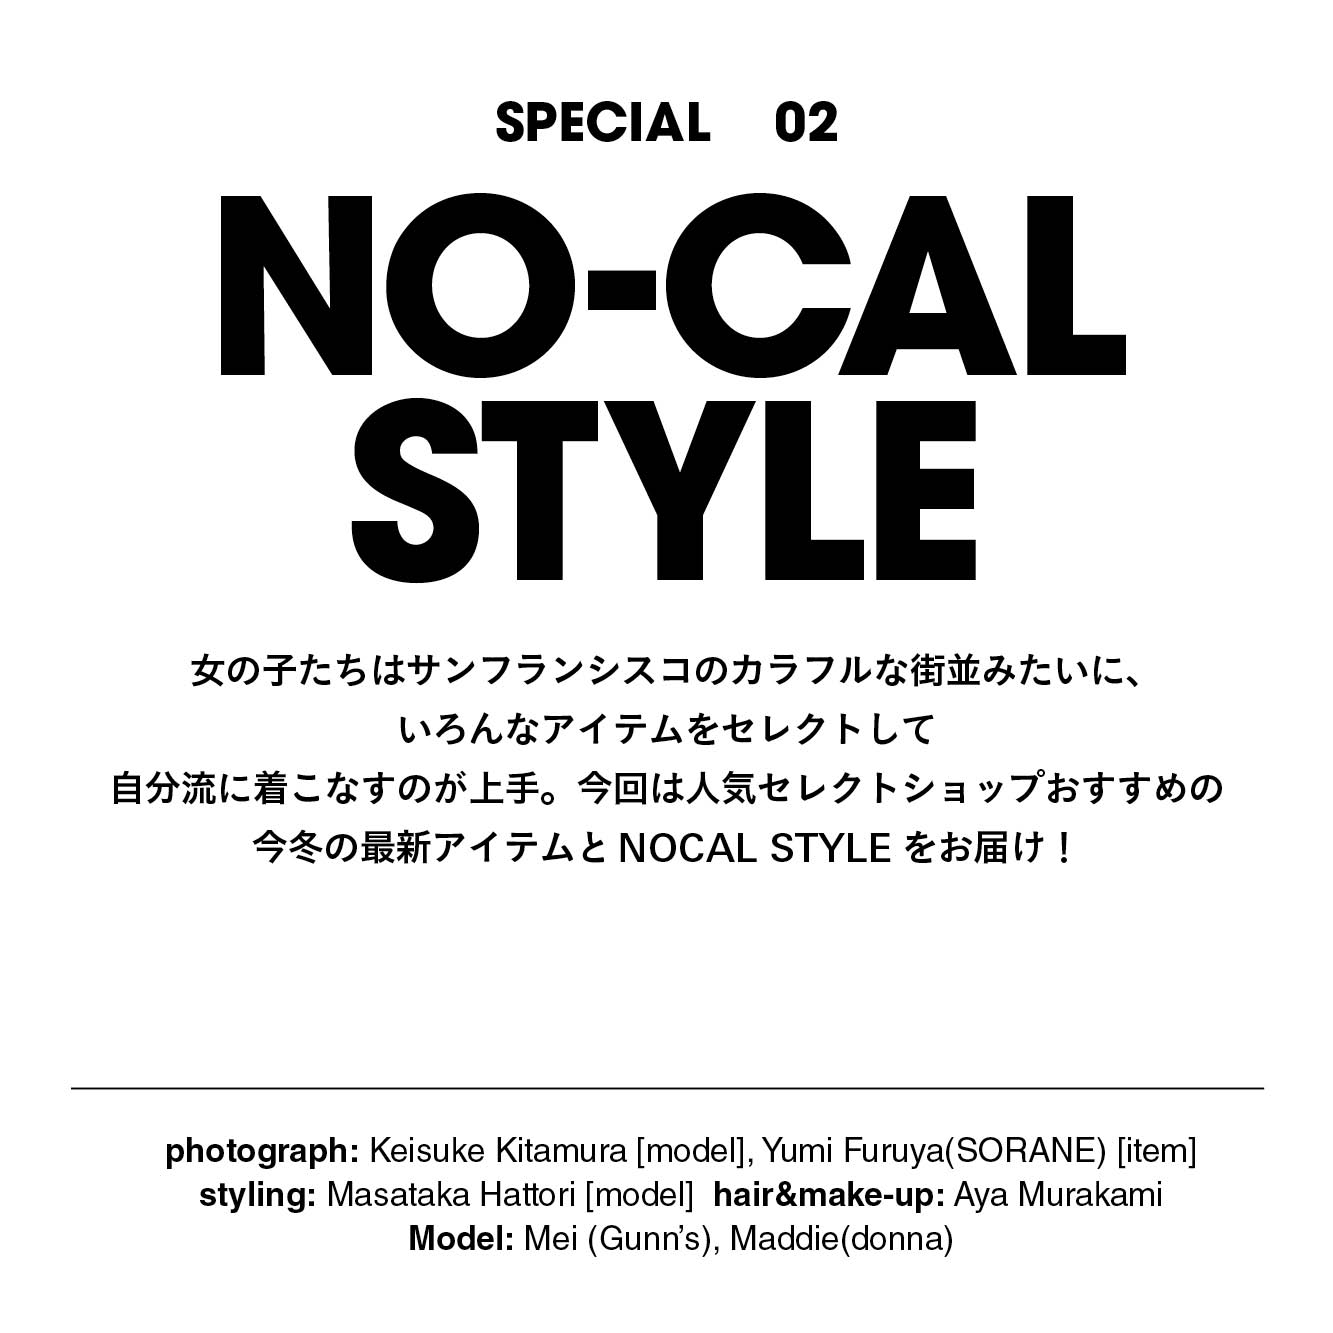 NOCAL STYLE